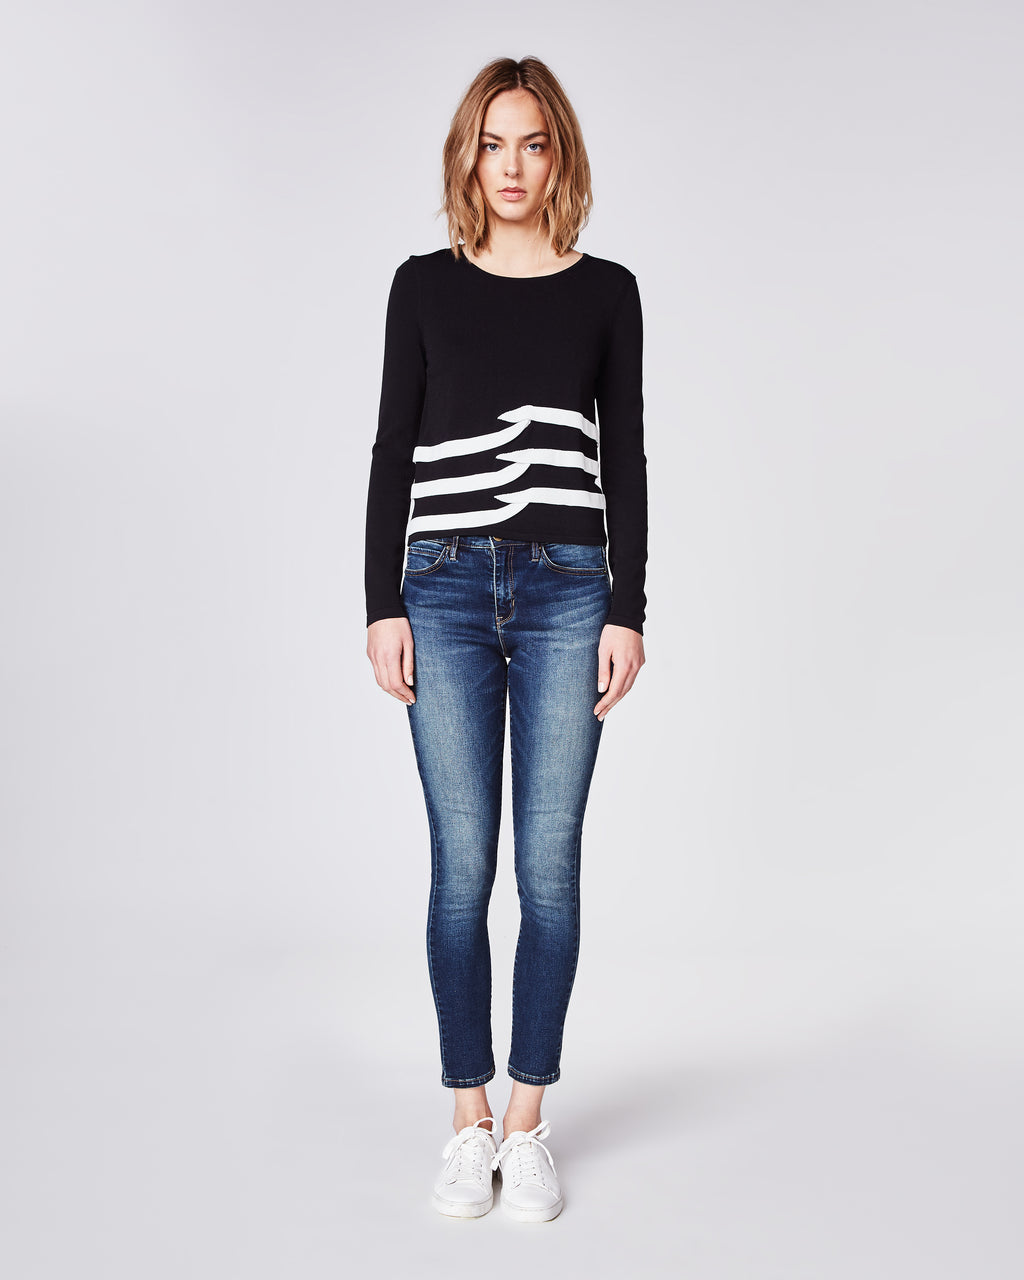 BH10373 - TIDAL PLEAT INTARSIA LONG SLEEVE TOP - tops - knitwear - This long sleeve top features contrasting tidal pleats for a flattering fit. Finished with a rounded neckline and unlined.